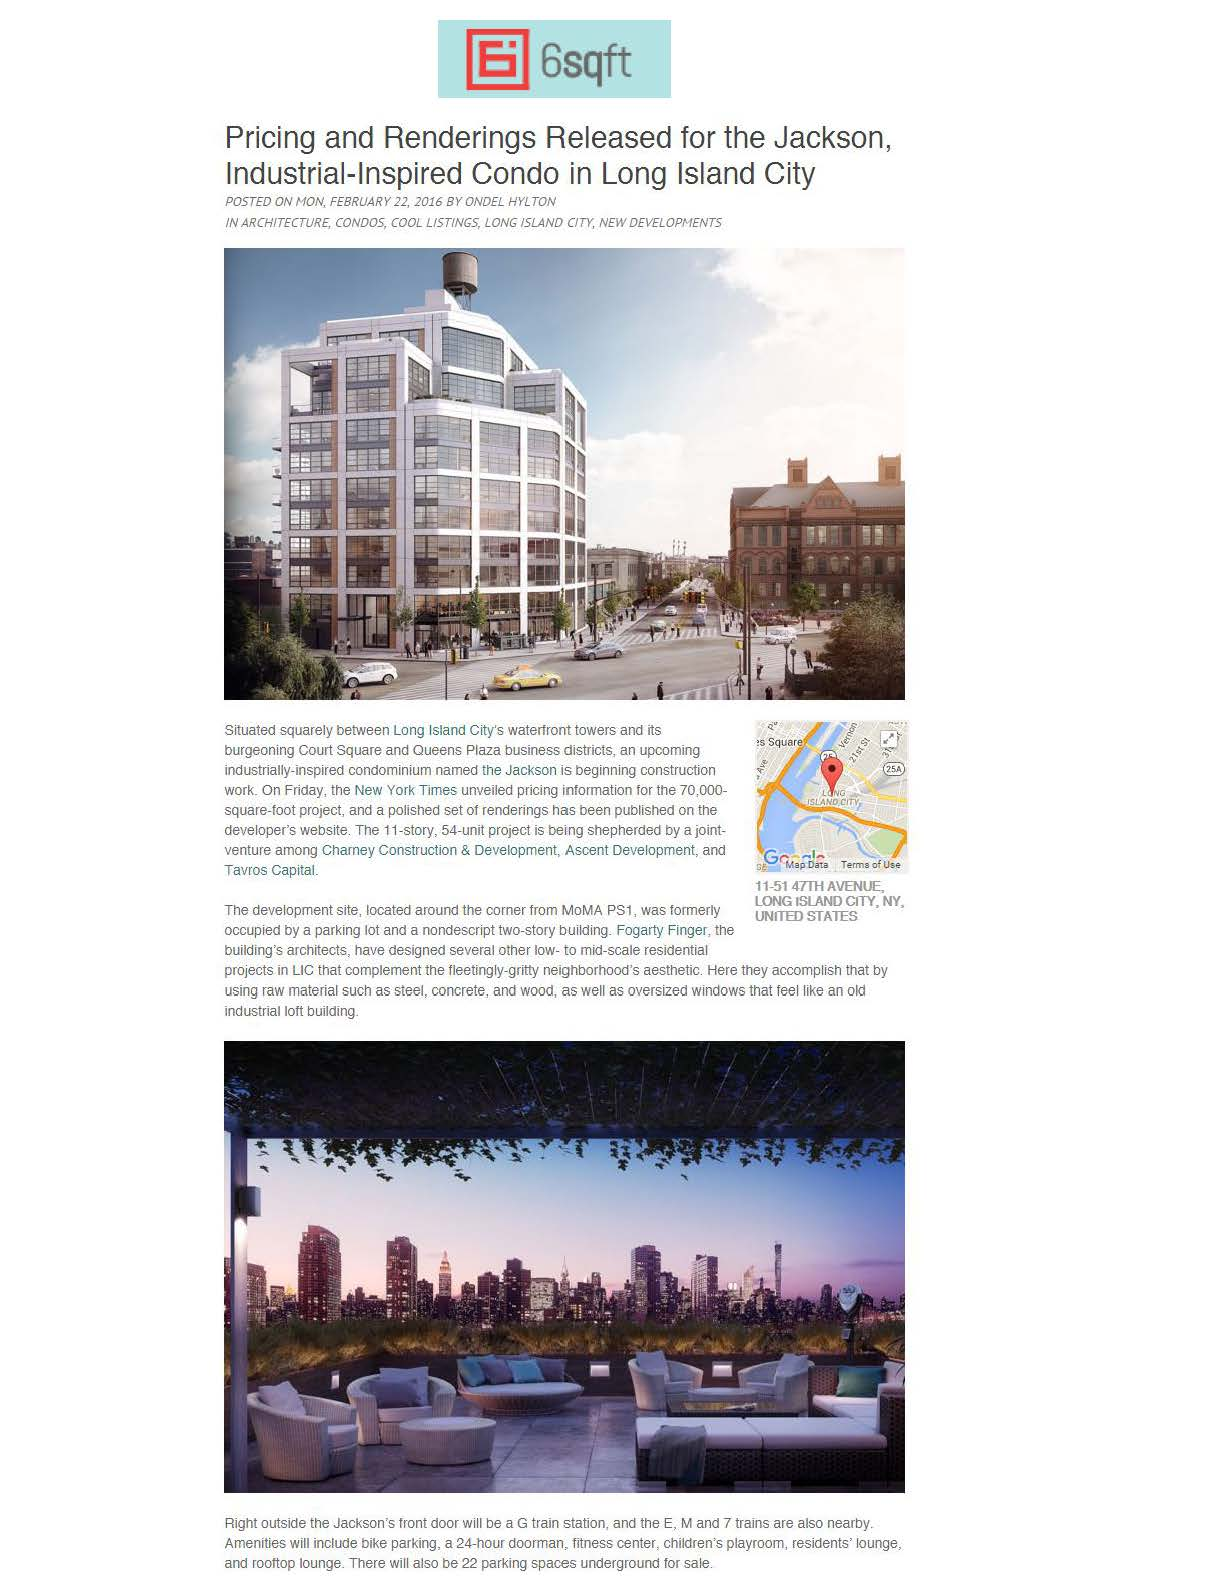 6sqft - Pricing and Renderings Released for The Jackson, Industrial-Inspired Condo in Long Island City - 2.22.16_Page_1